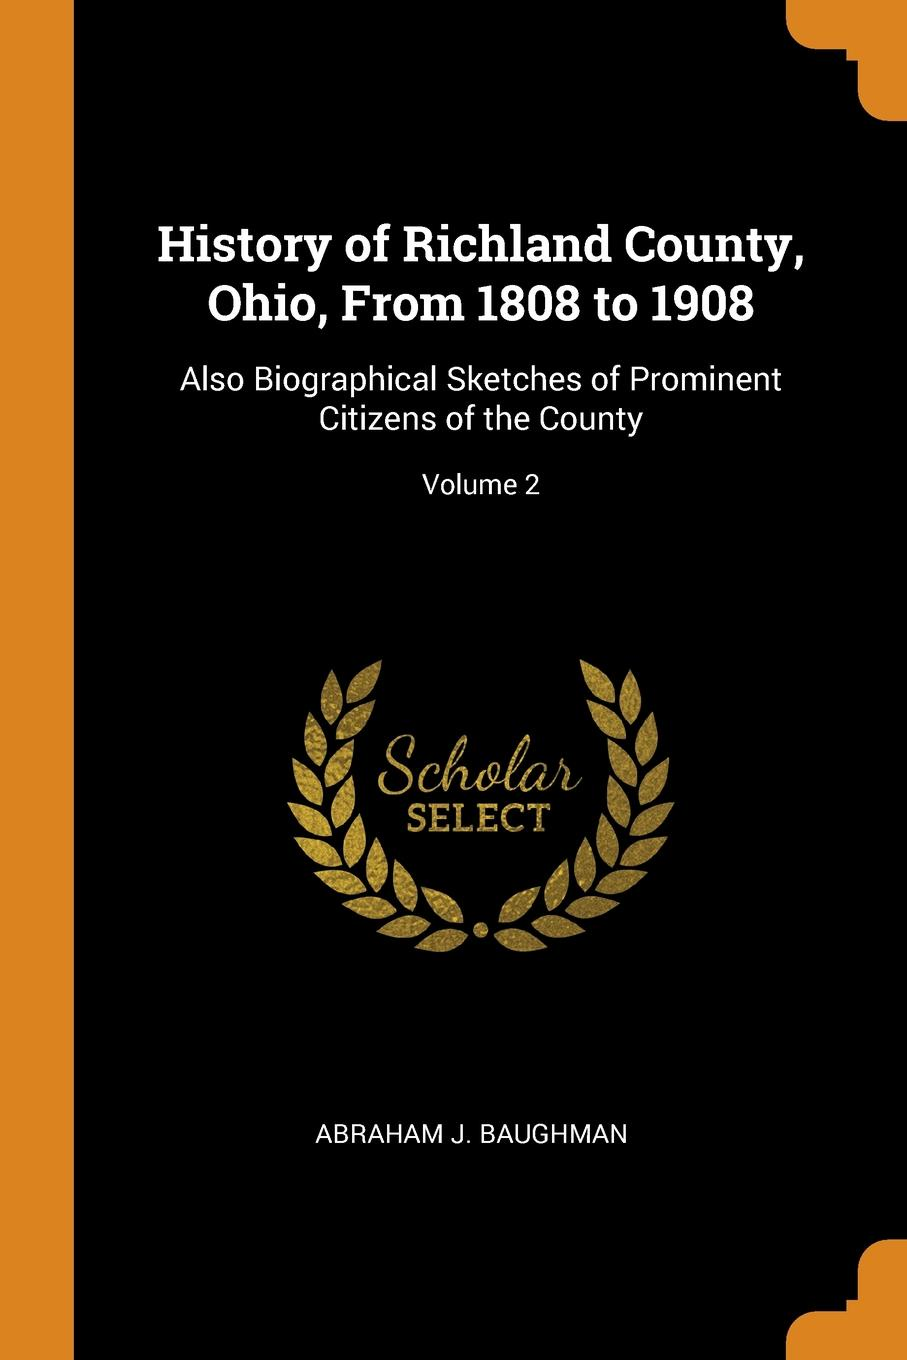 Abraham J. Baughman History of Richland County, Ohio, From 1808 to 1908. Also Biographical Sketches of Prominent Citizens of the County; Volume 2